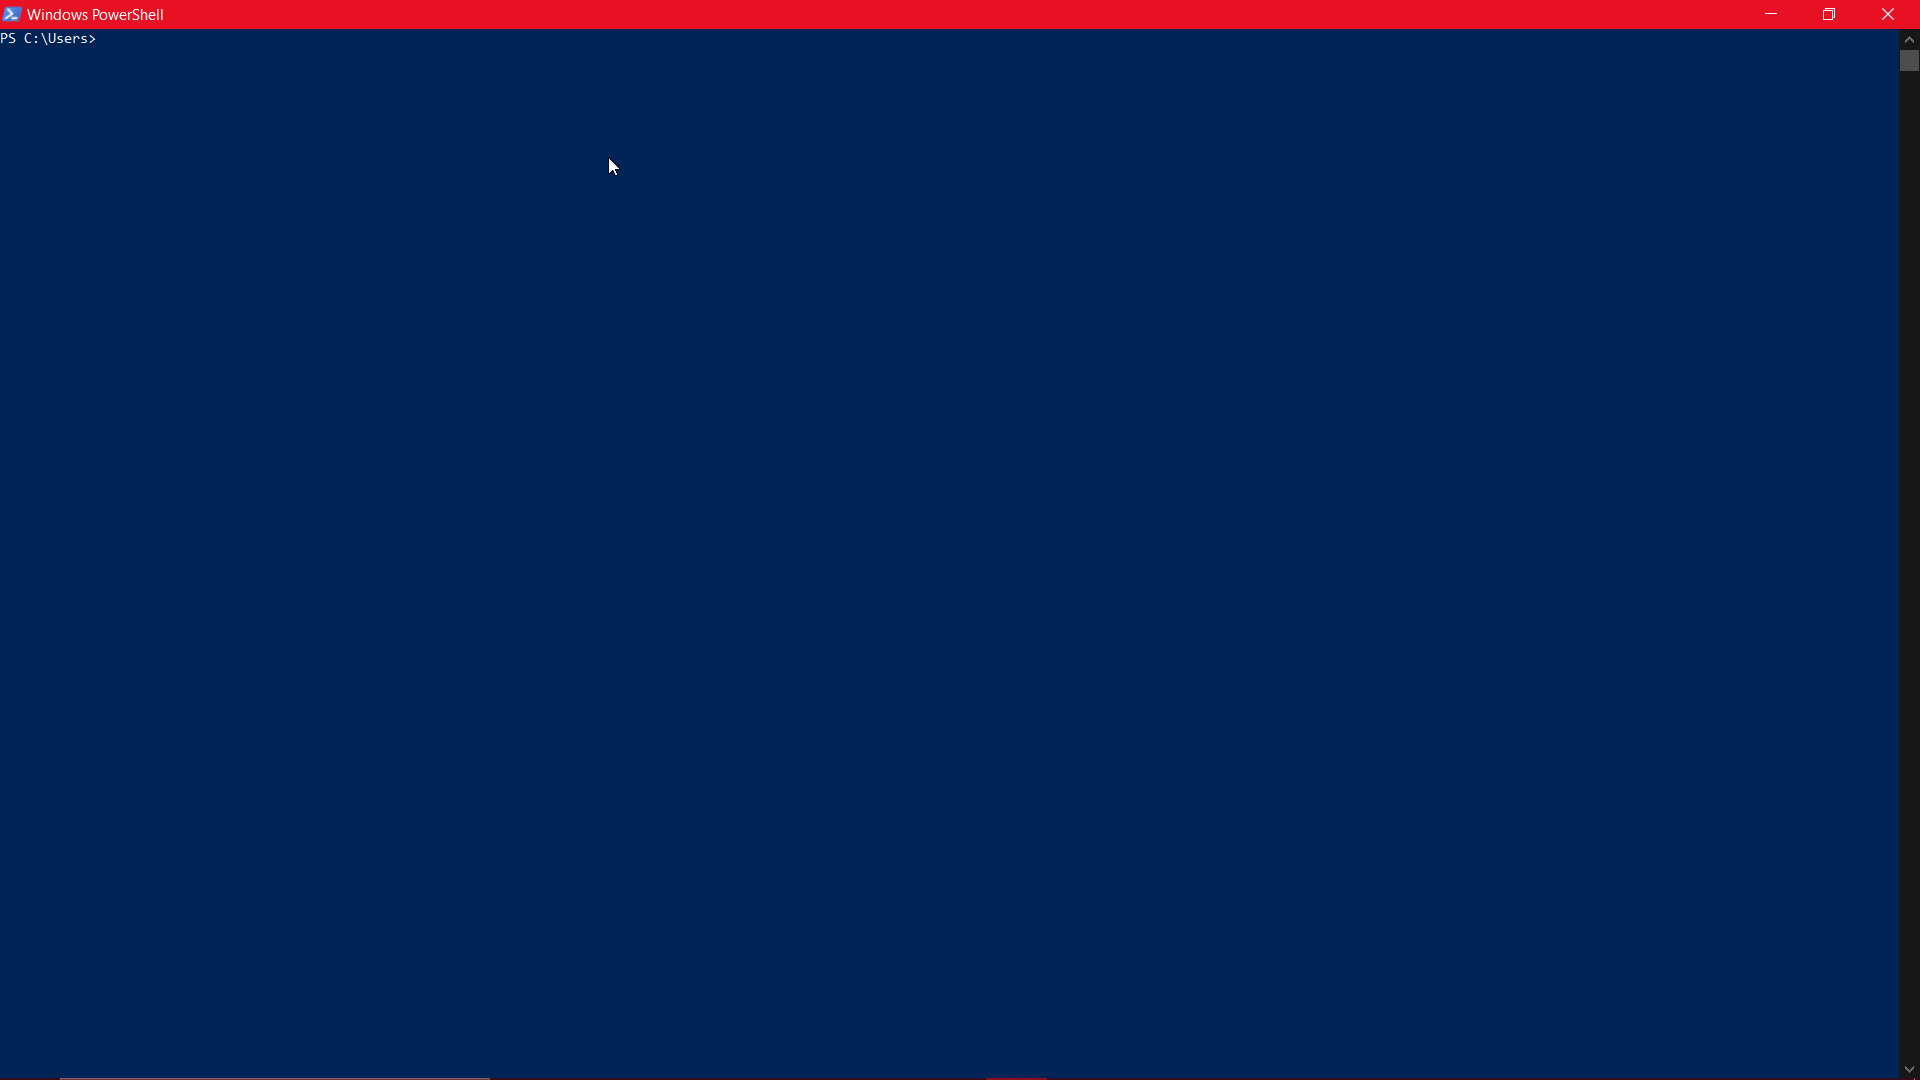 9 free Windows terminal apps to use with Linux Command Line Interface: Windows powershell